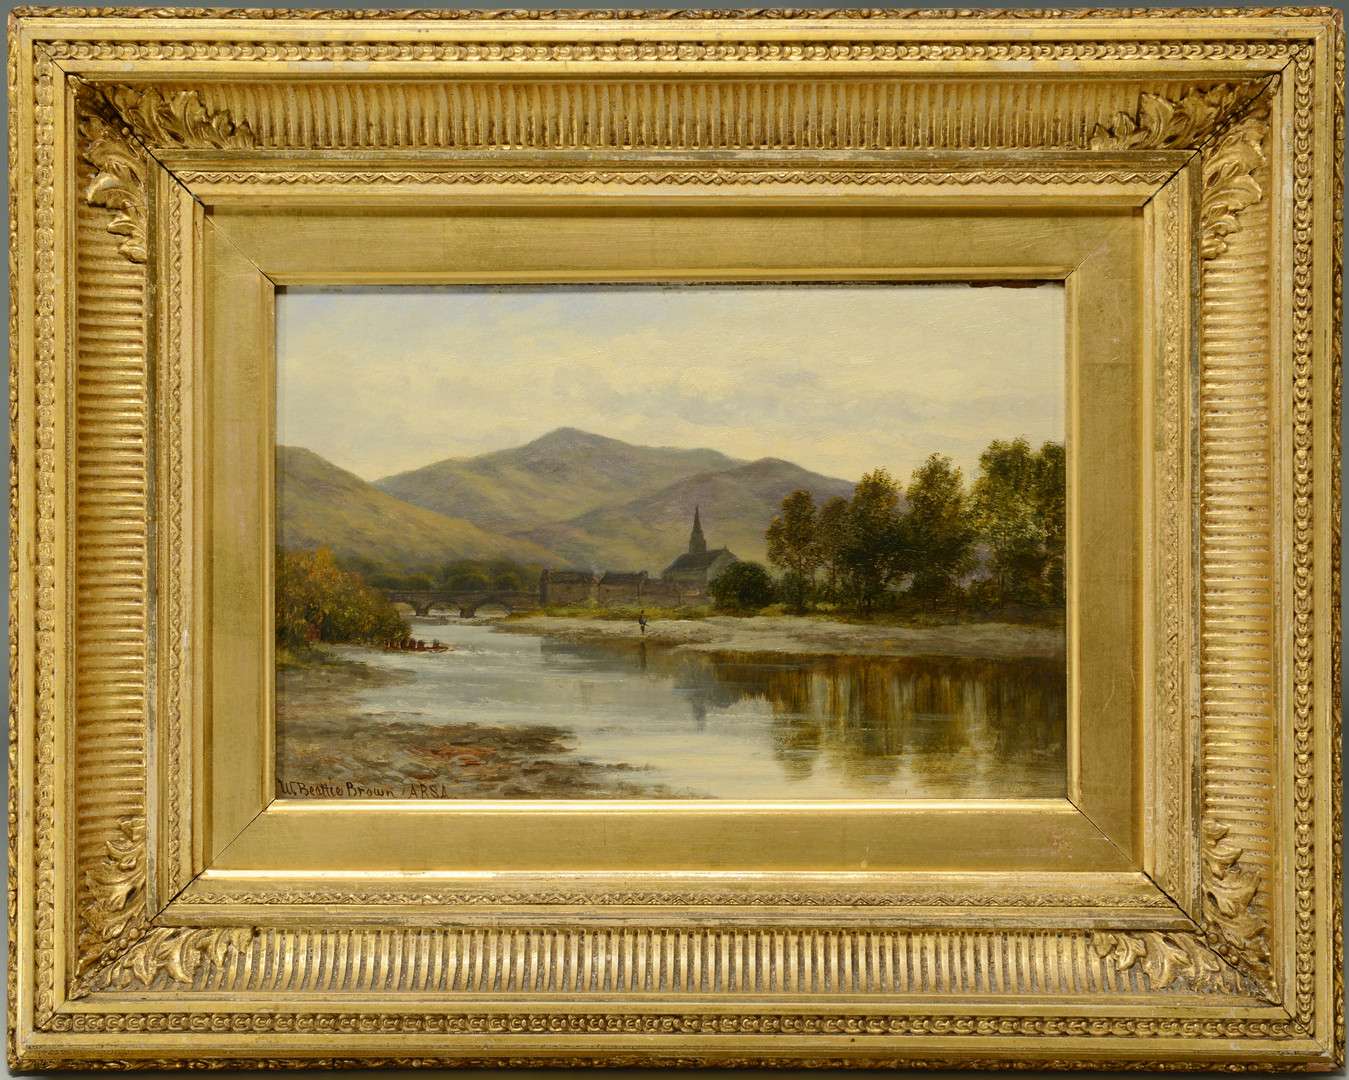 Lot 367: William B. Brown o/b Earn River Landscape